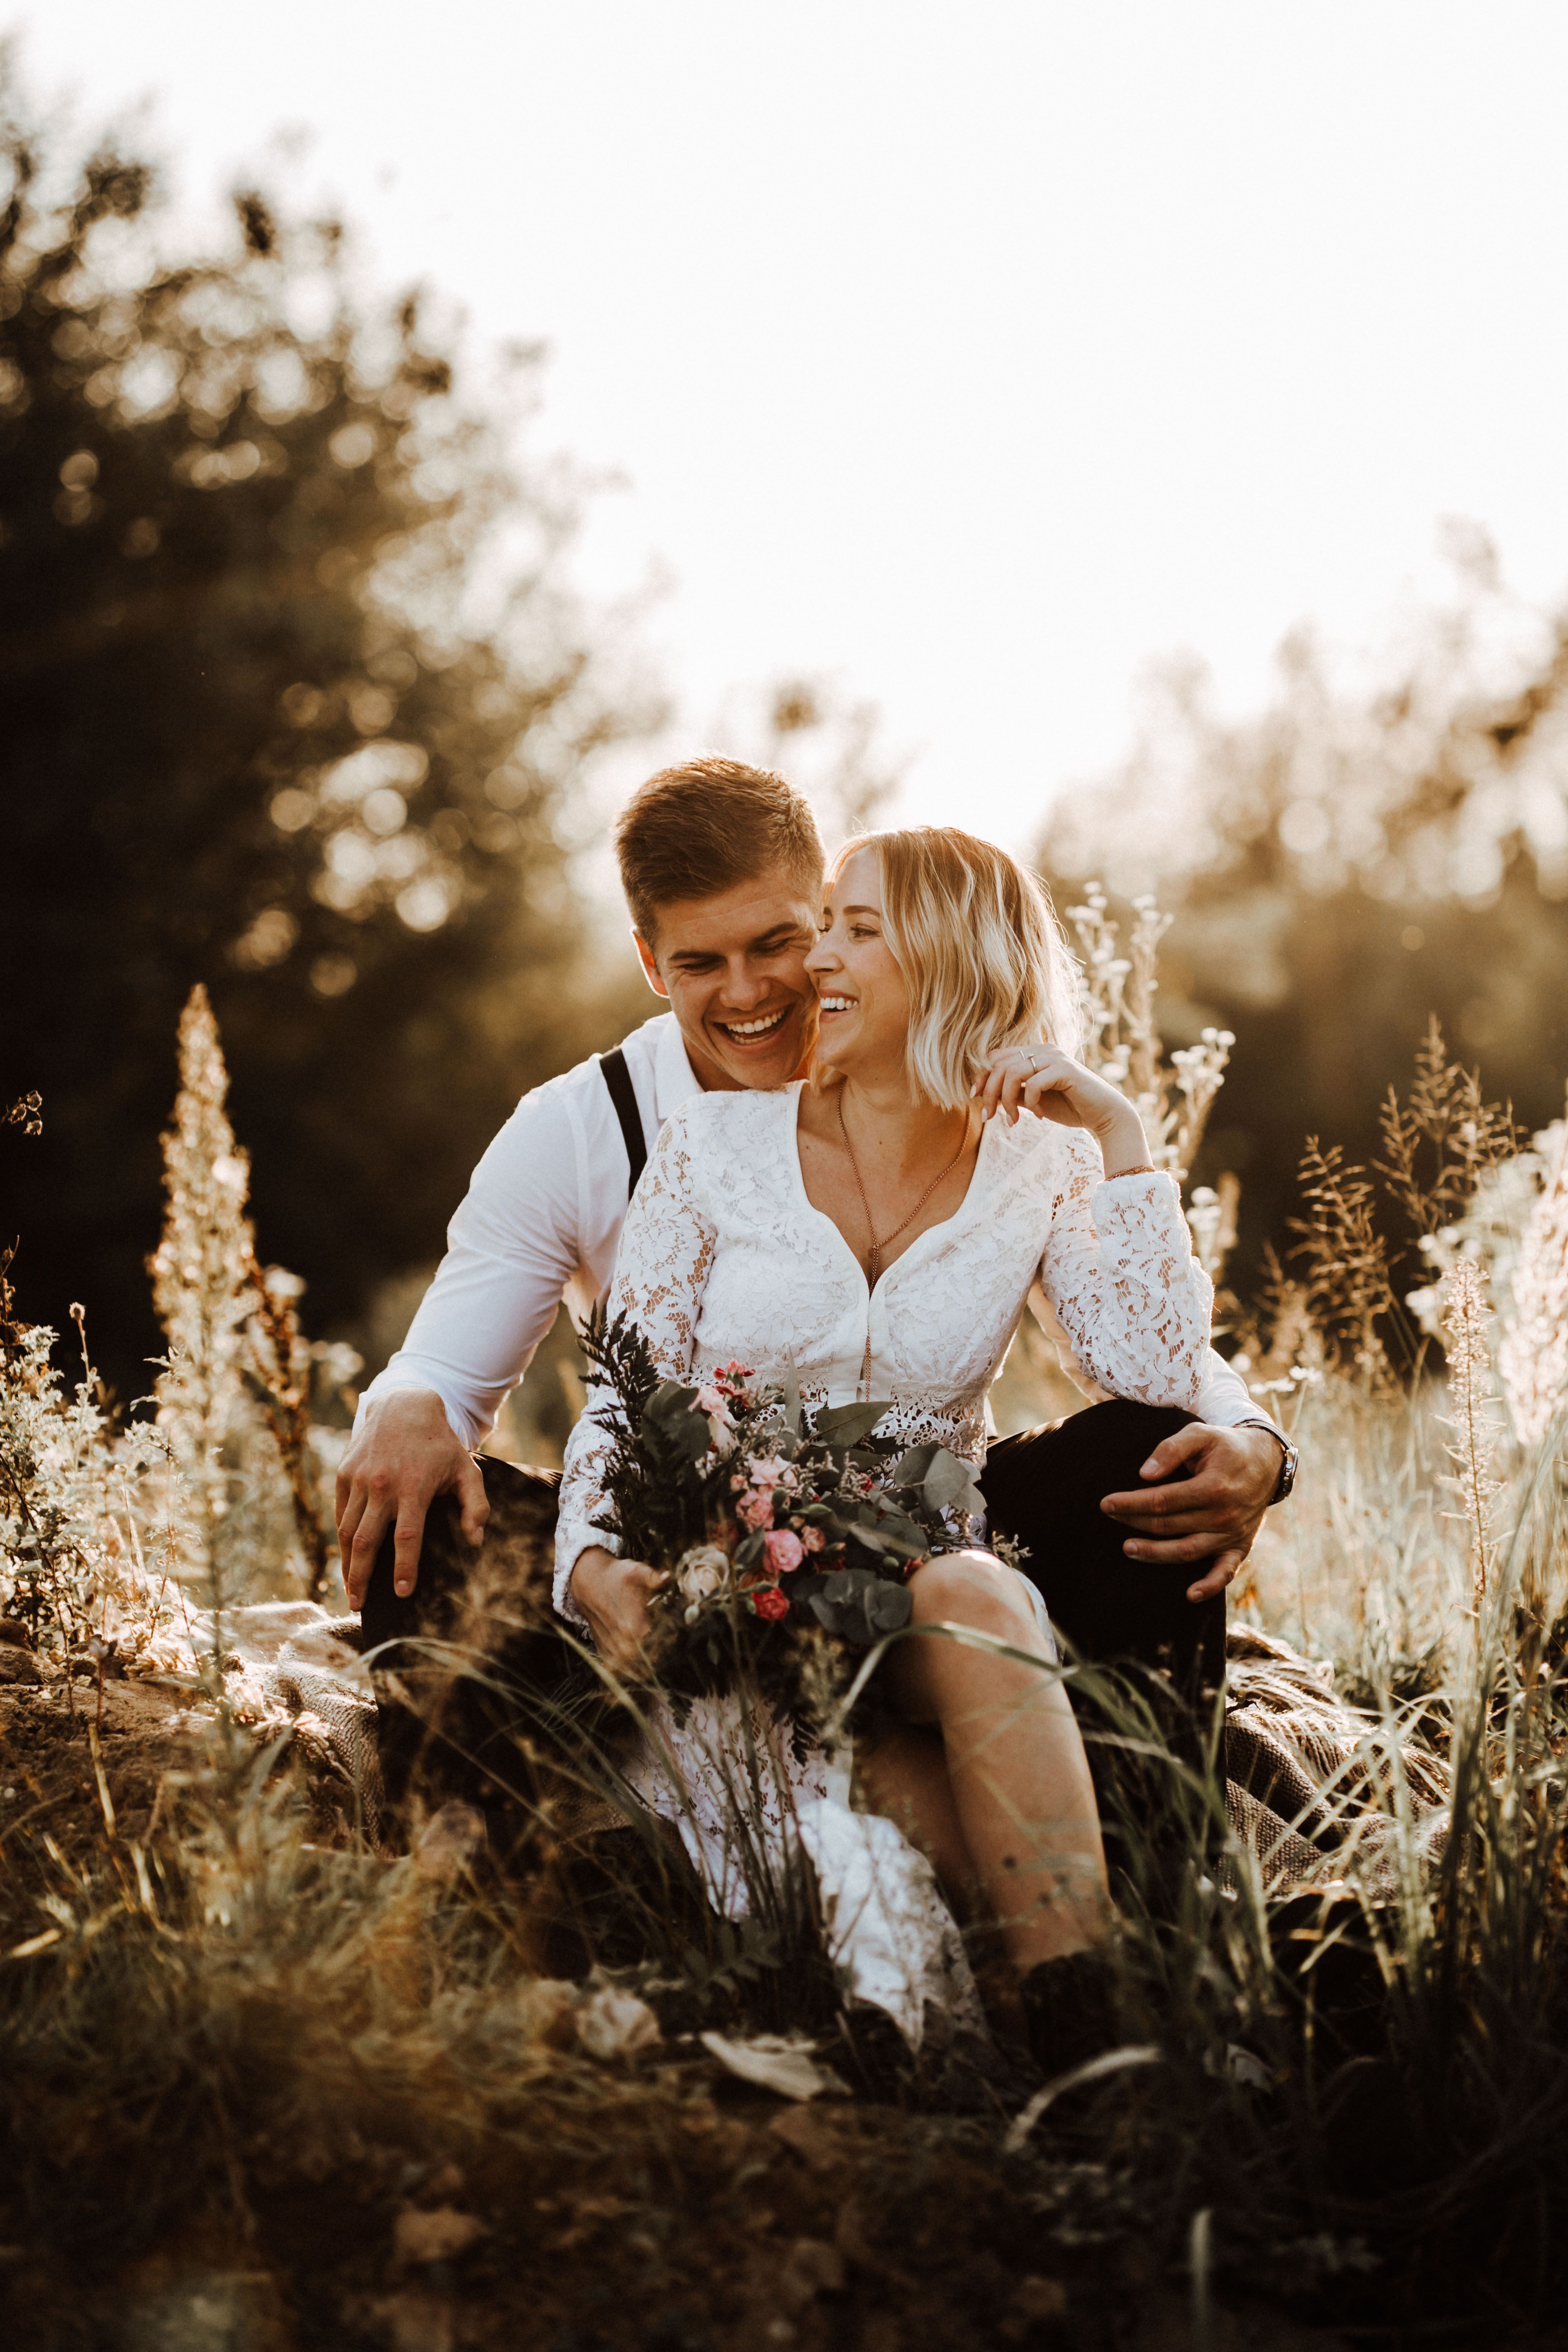 brautpaar shooting | boho inspired | authentische hochzeitsfotografie | boho wedding | free spirit | vintage wedding | couple shooting | golden hour | sunset shooting | wedding photographer | PHOTOGRAPHER: svenja schuerheck fotografie